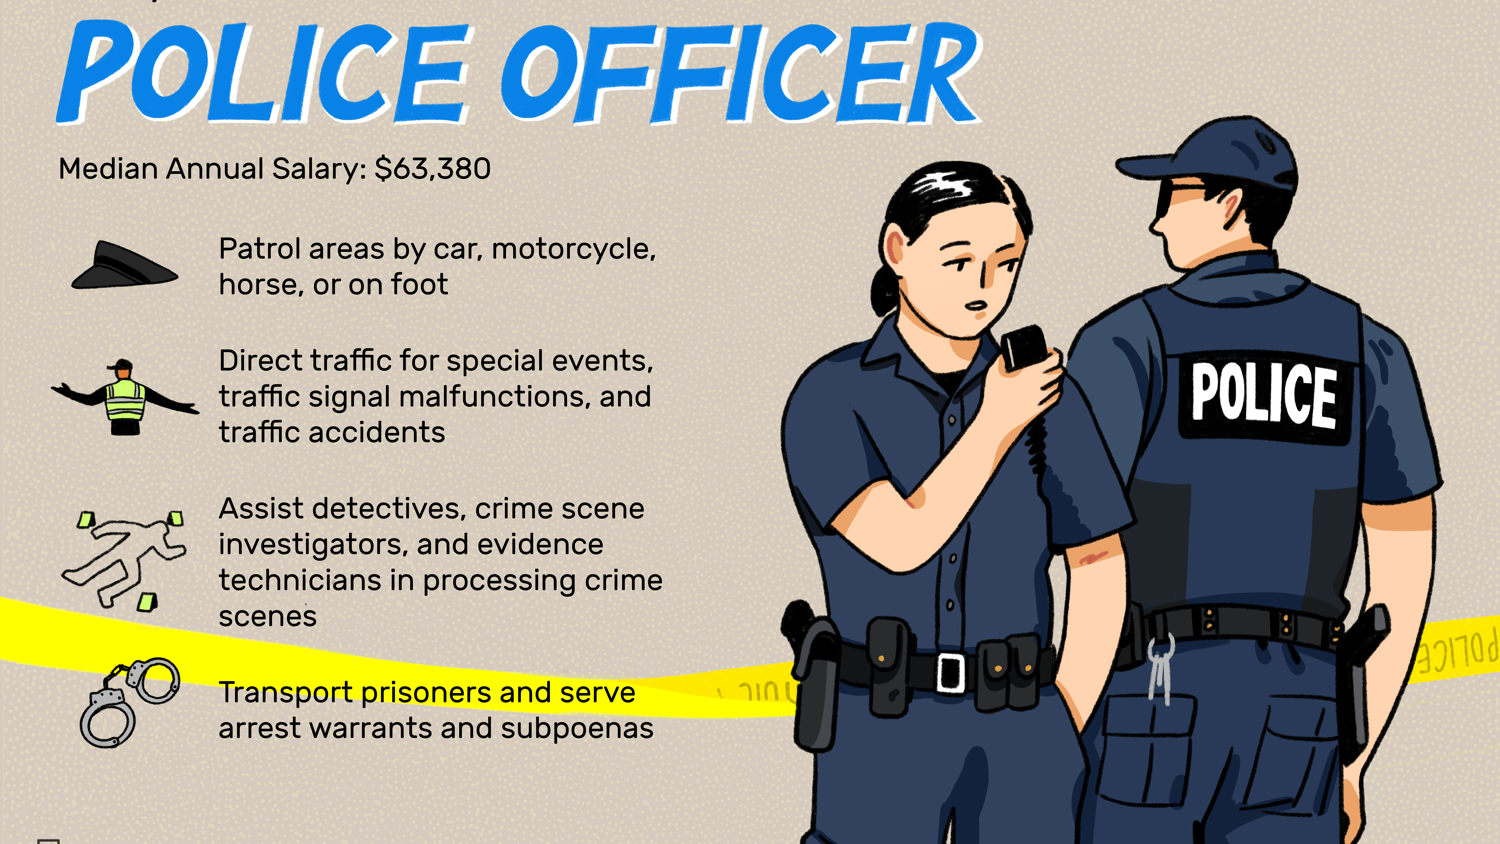 Police Officer Job Description: Salary, Skills, & More